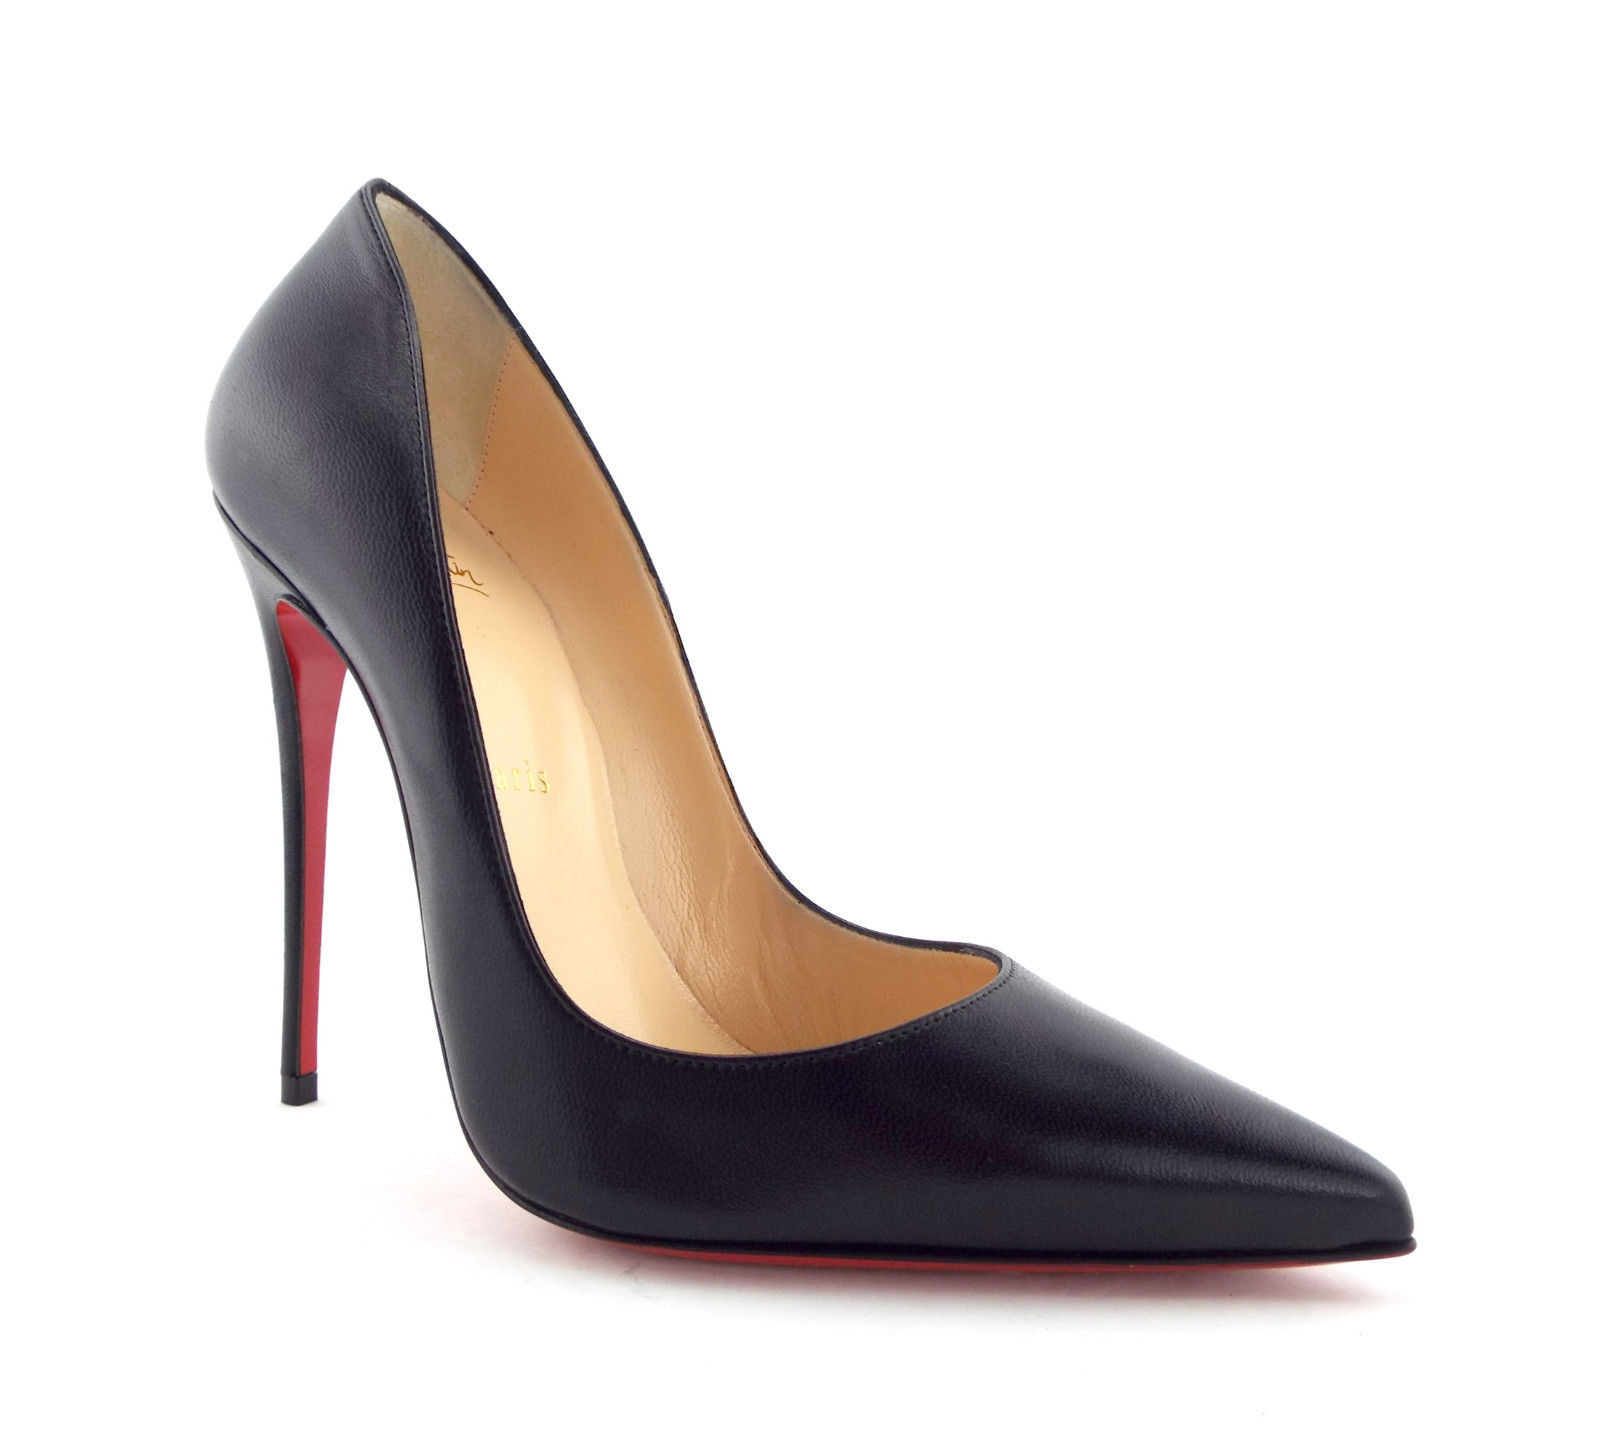 c9c58c62226a CHRISTIAN LOUBOUTIN Size 7.5 SO KATE Black Leather Heels Pumps Shoes 38 -  $549.00